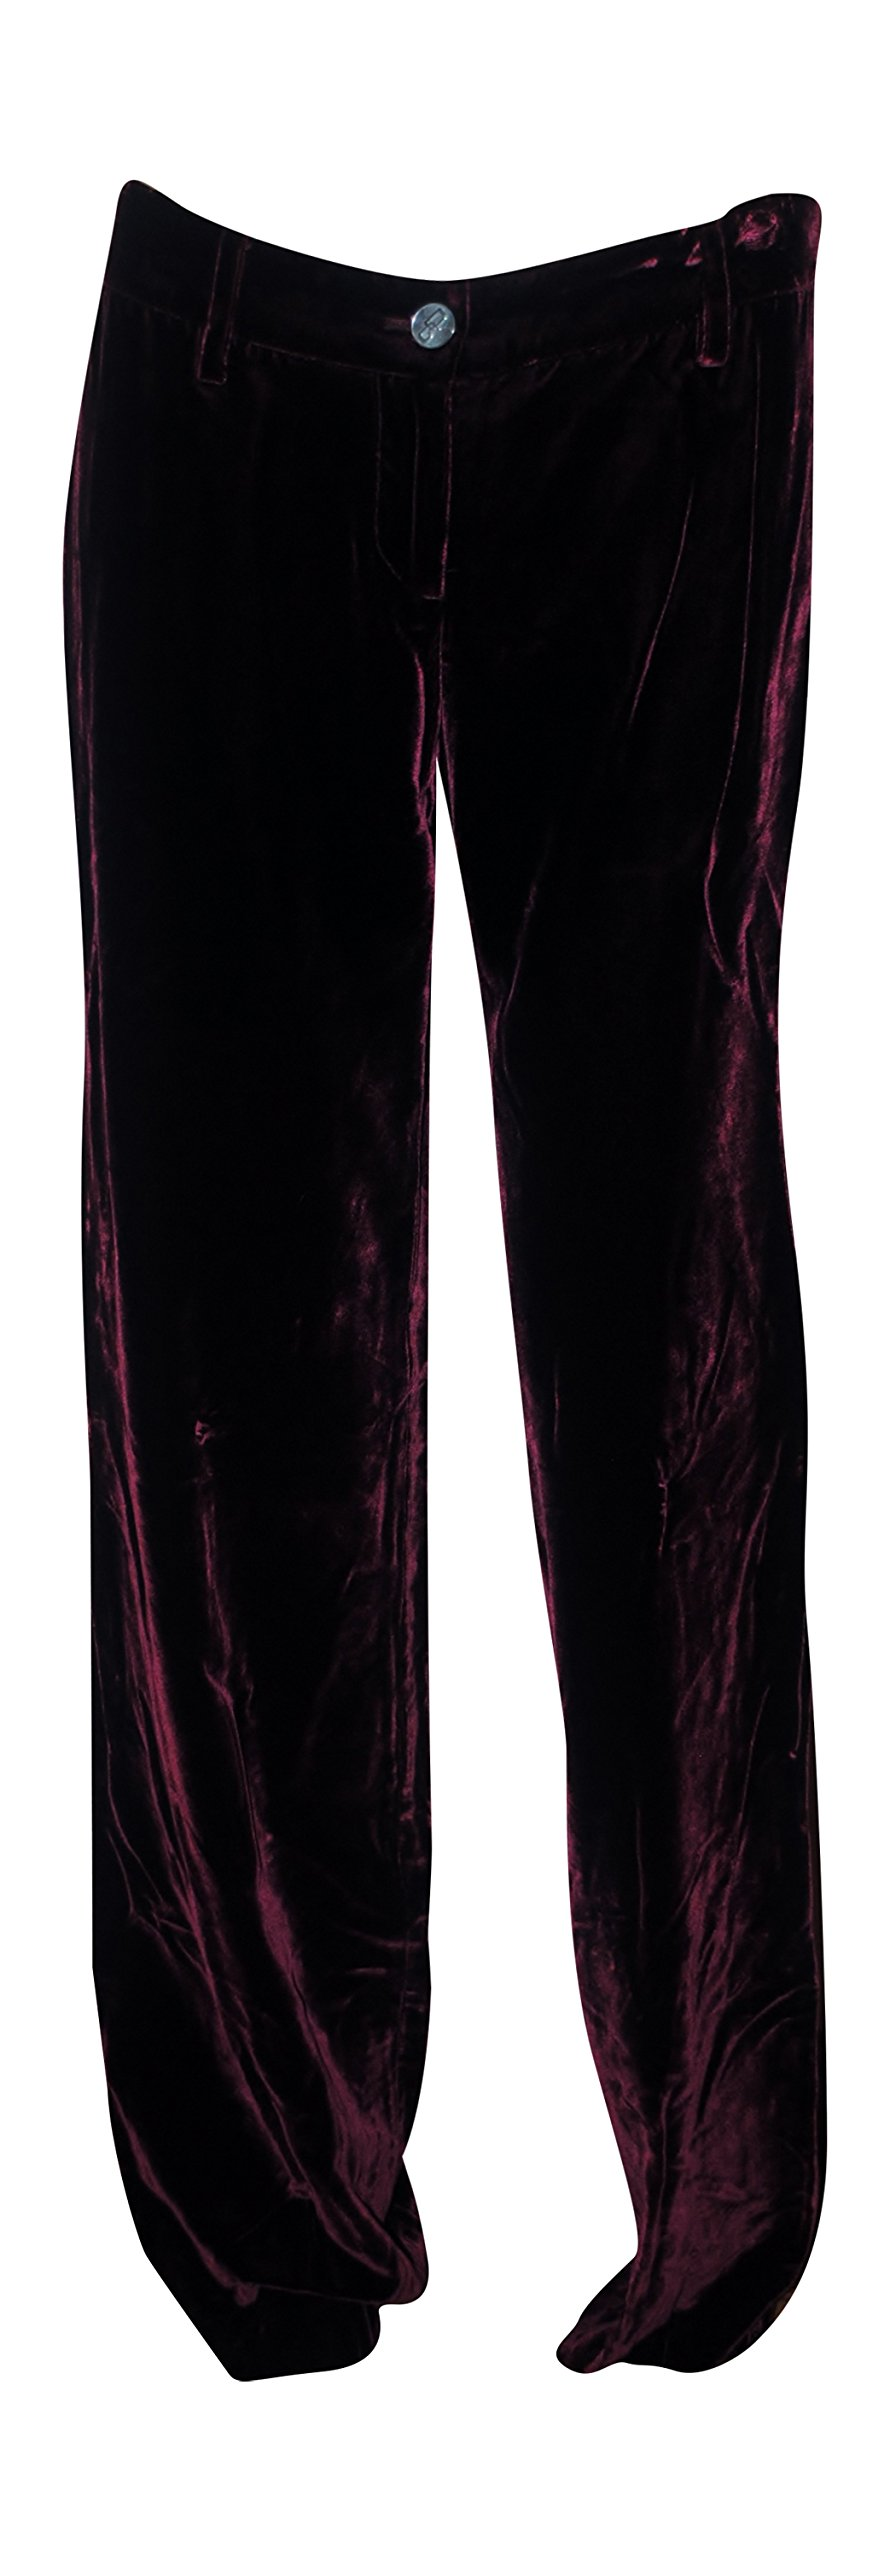 Dolce & Gabbana Women's Velvet Pants Cranberry Red (38 IT) Size 4